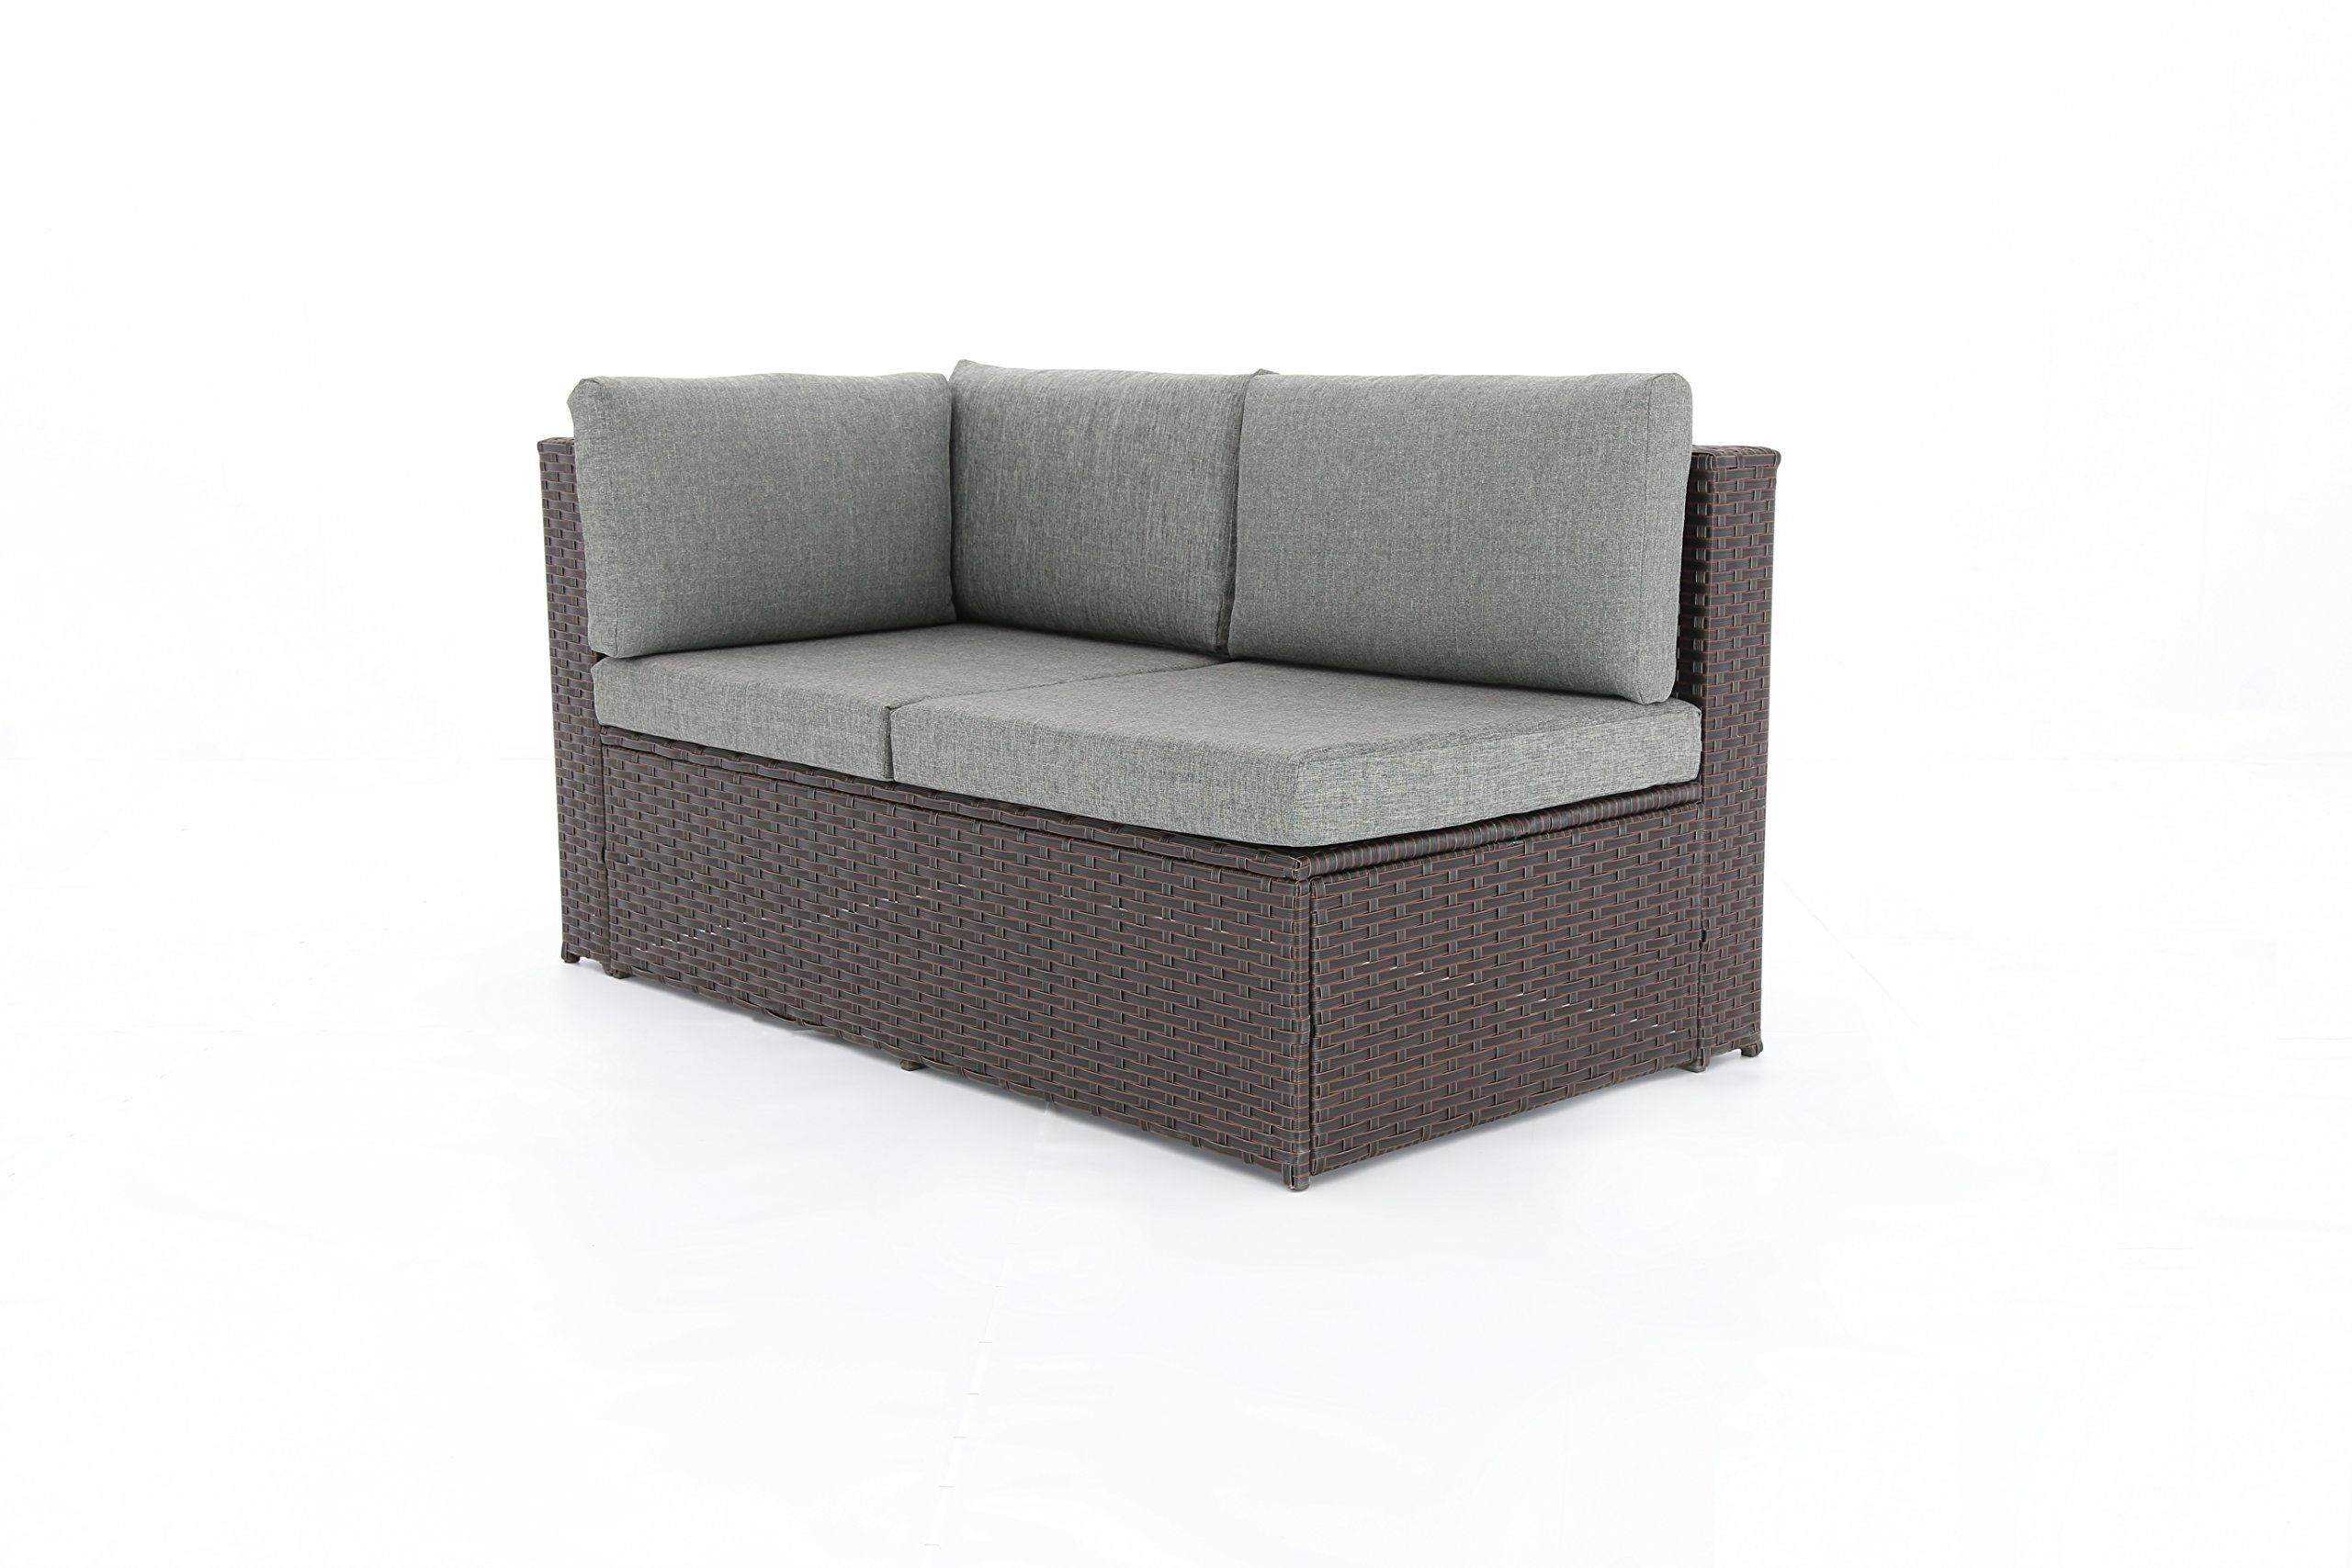 59582d67a306 Baner Garden K35CH 4 Pieces Outdoor Furniture Complete Patio Cushion Wicker  Rattan Garden Corner Sofa Couch Set Chocolate >>> Find out more about the  great ...